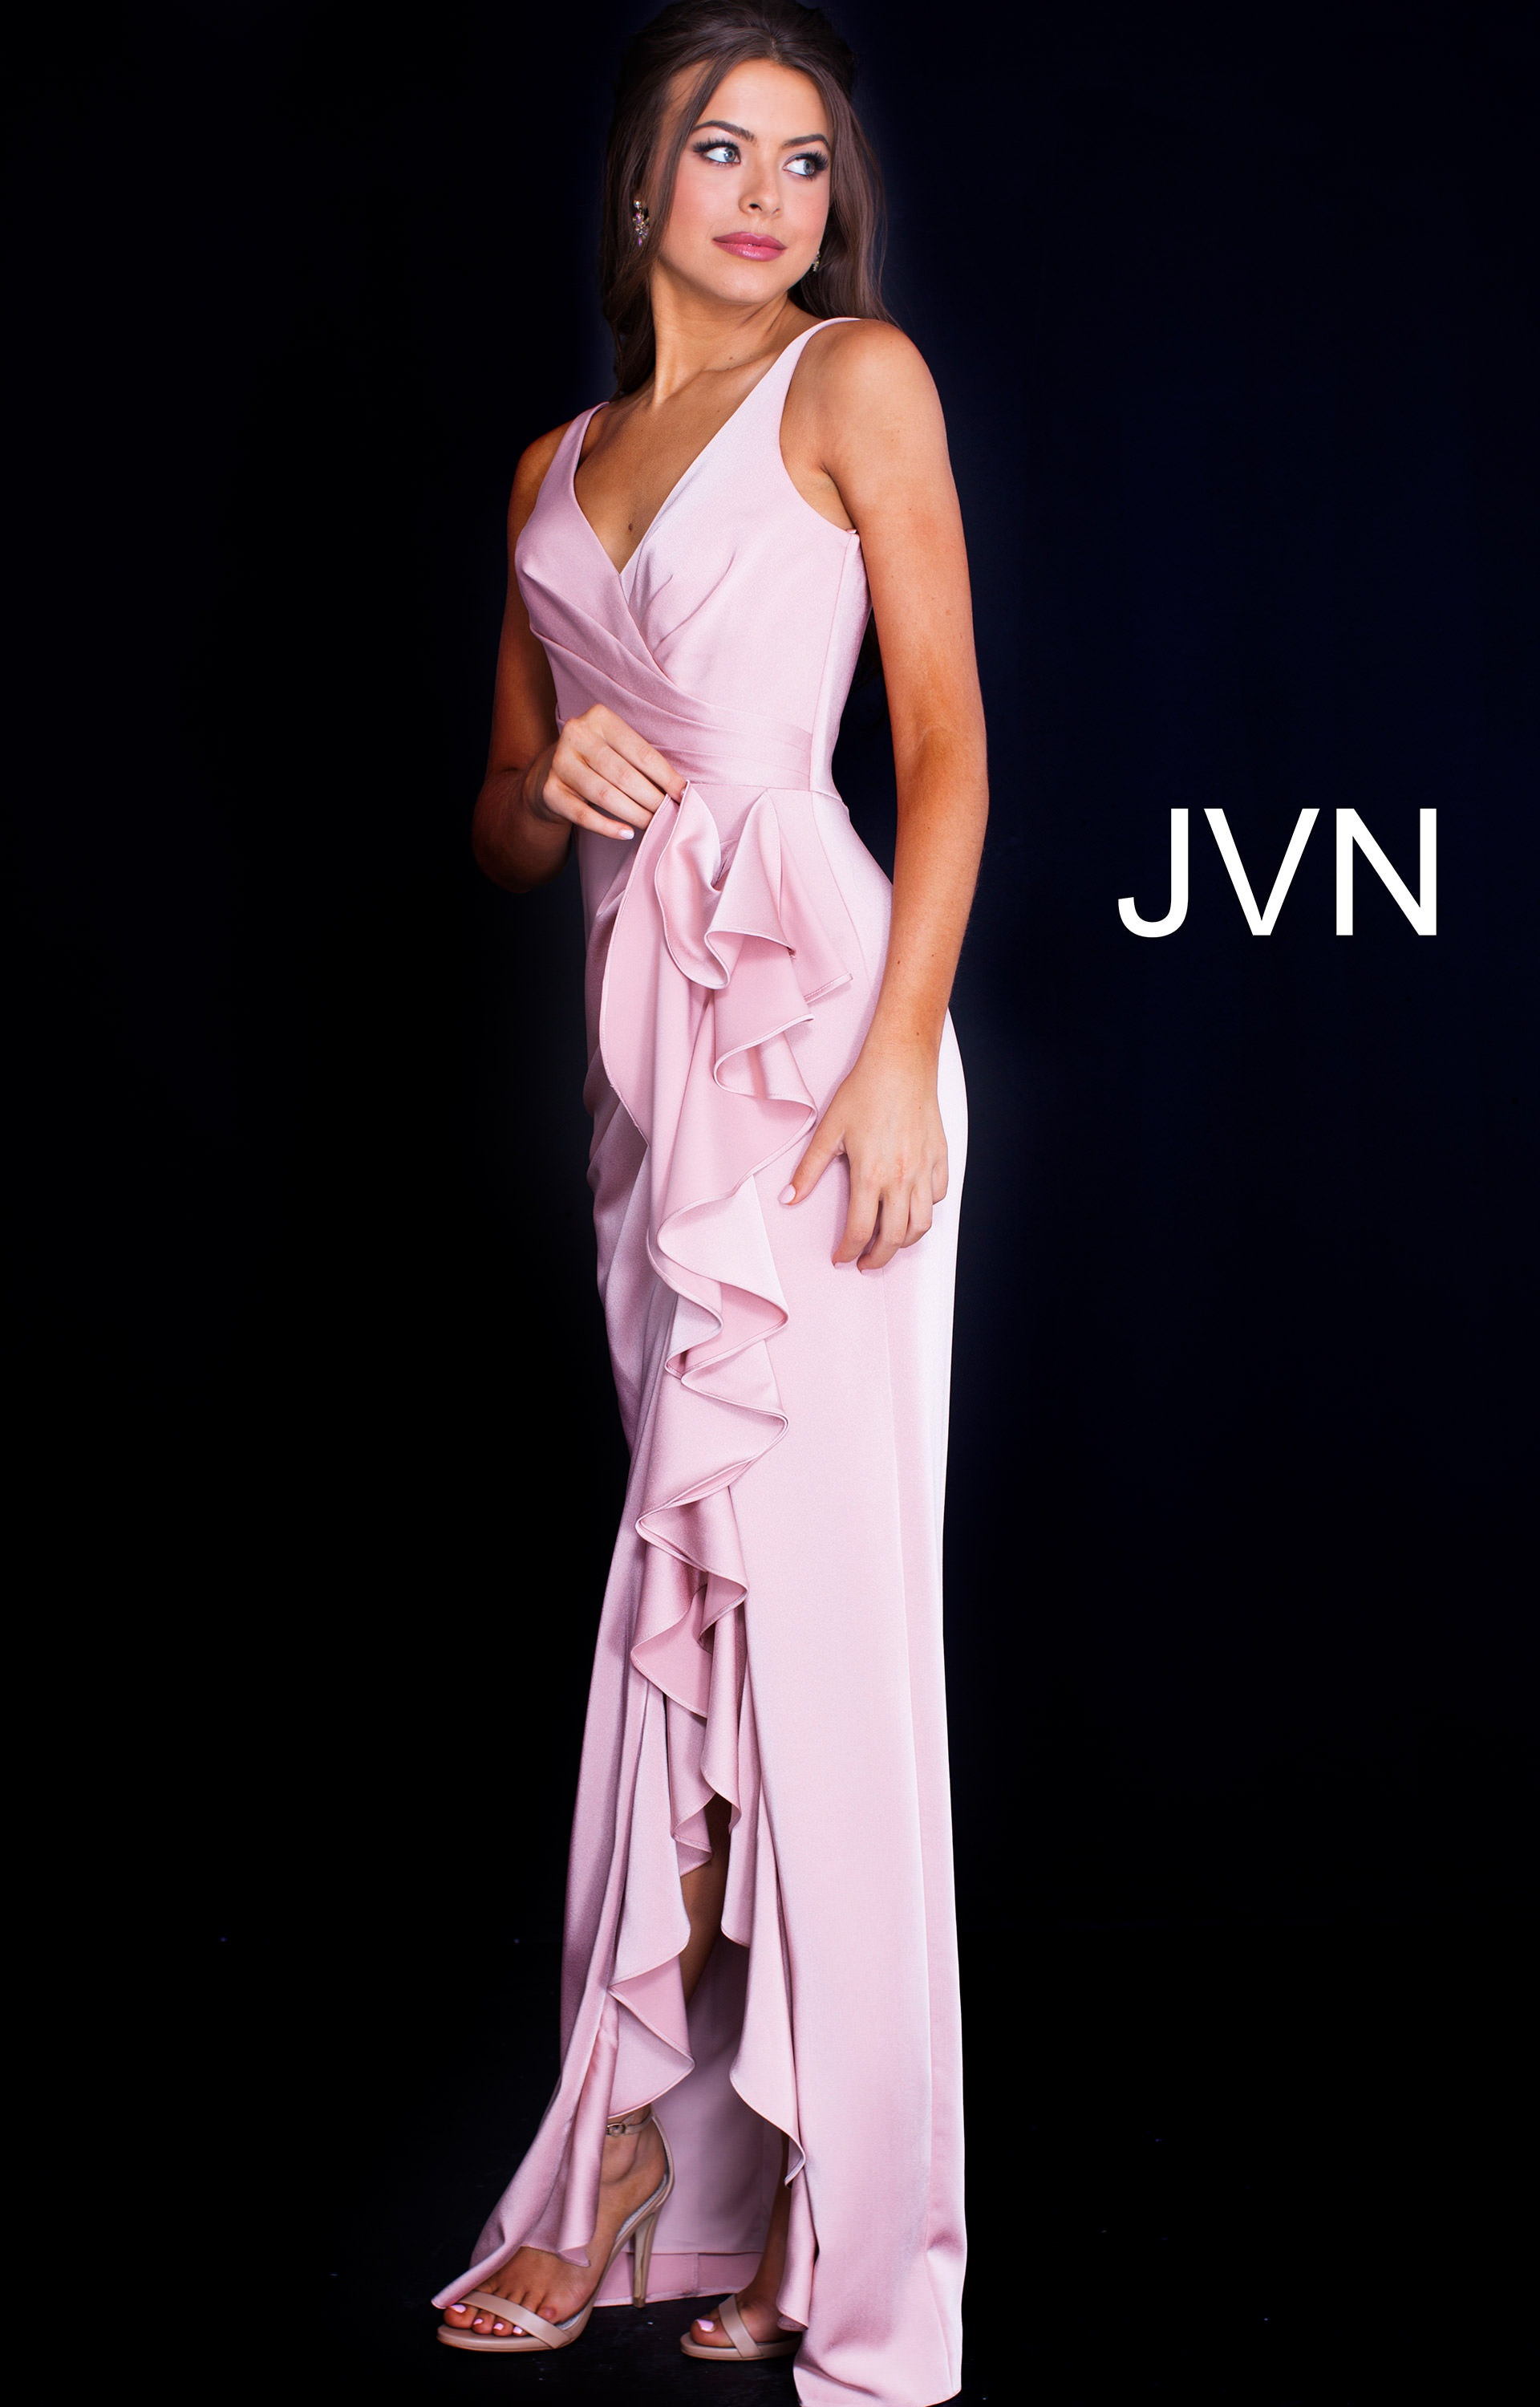 Jovani jvn60055 - Long Fitted Crepe V-Neck Prom Dress